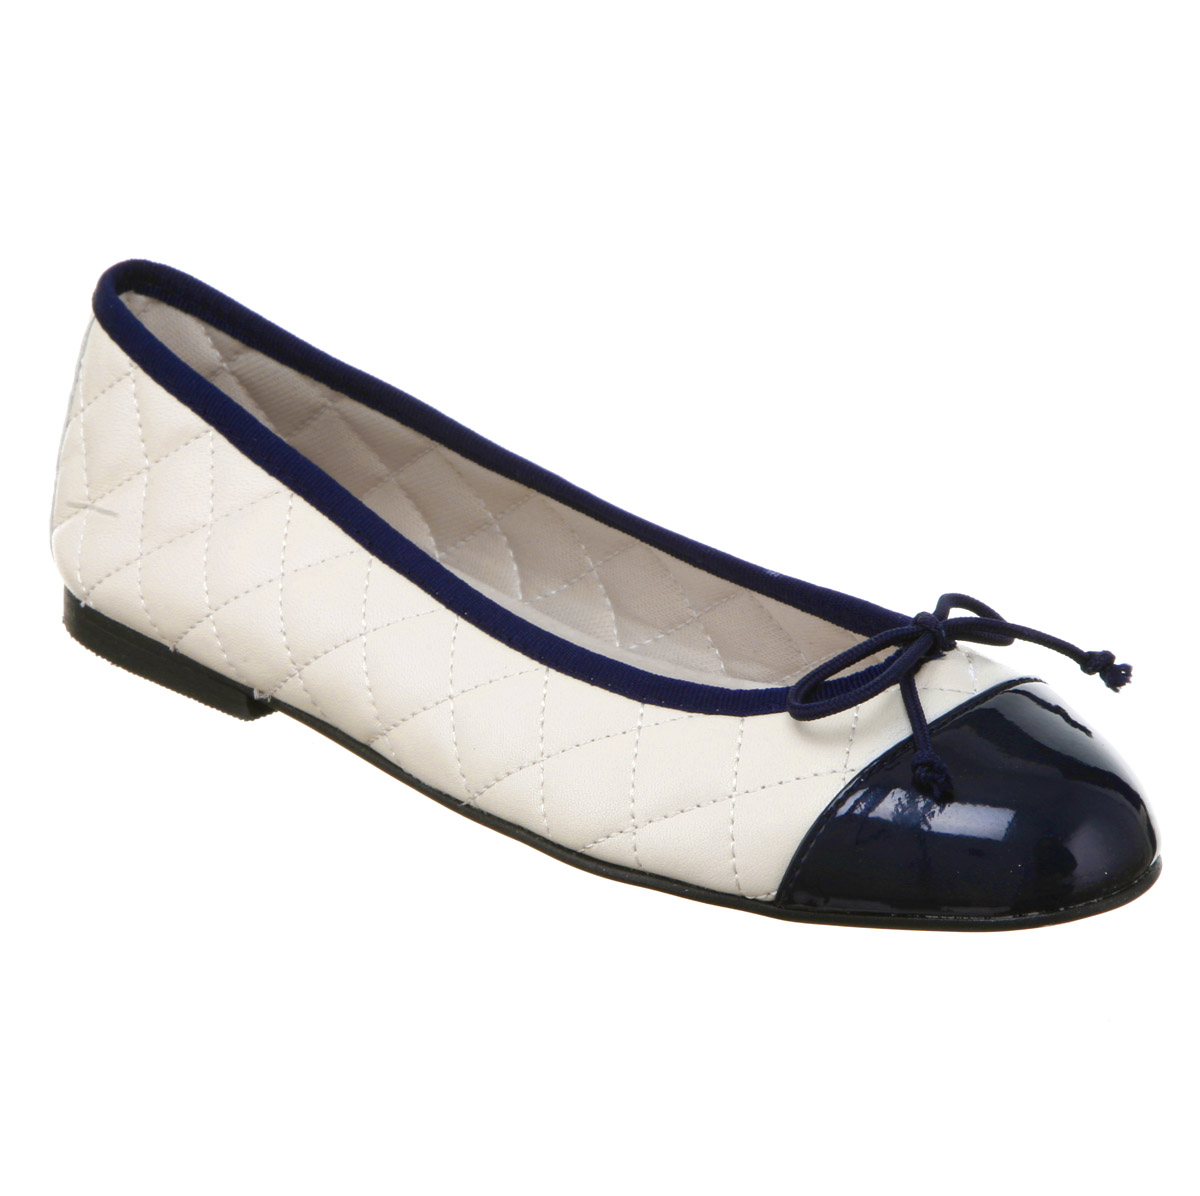 Flats Ballet Womens Meeshine Navy Foldable Slip Blue On Bow Shoes Dress 6ZY6Pwq Shoes Dress Navy Blue On Meeshine Ballet Foldable Flats Slip Bow Womens Paperback. US$ US$ Save US$ Add to basket. 10% off The Broken Shore. Peter Temple. 11 Aug